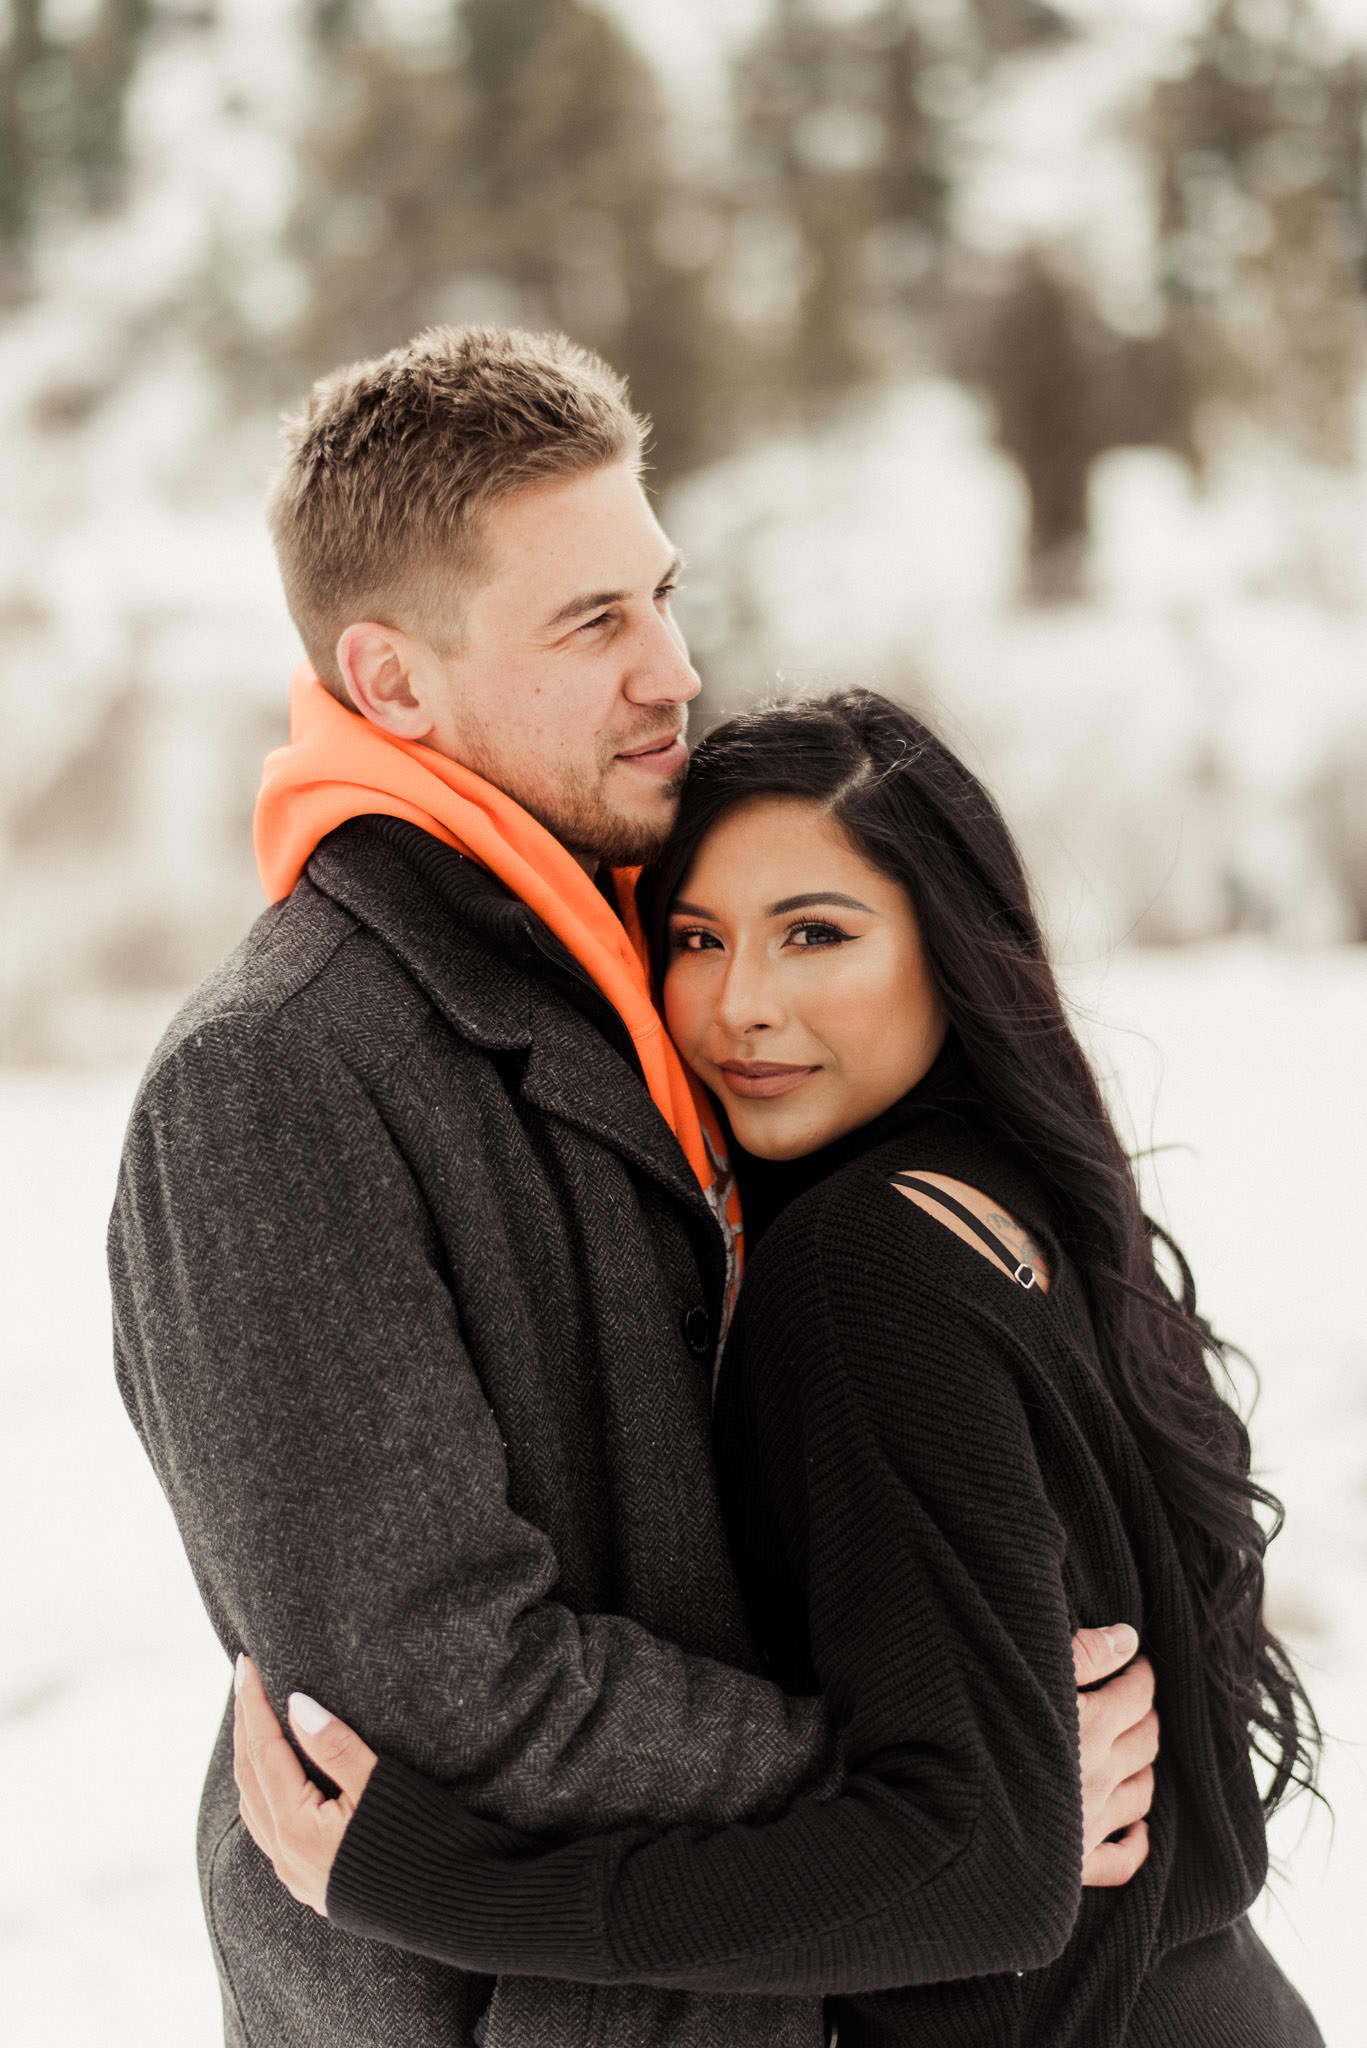 sandra-ryan-colorado-winter-snow-engagement-couples-valentines-red-houston-photographer-sm-37.jpg